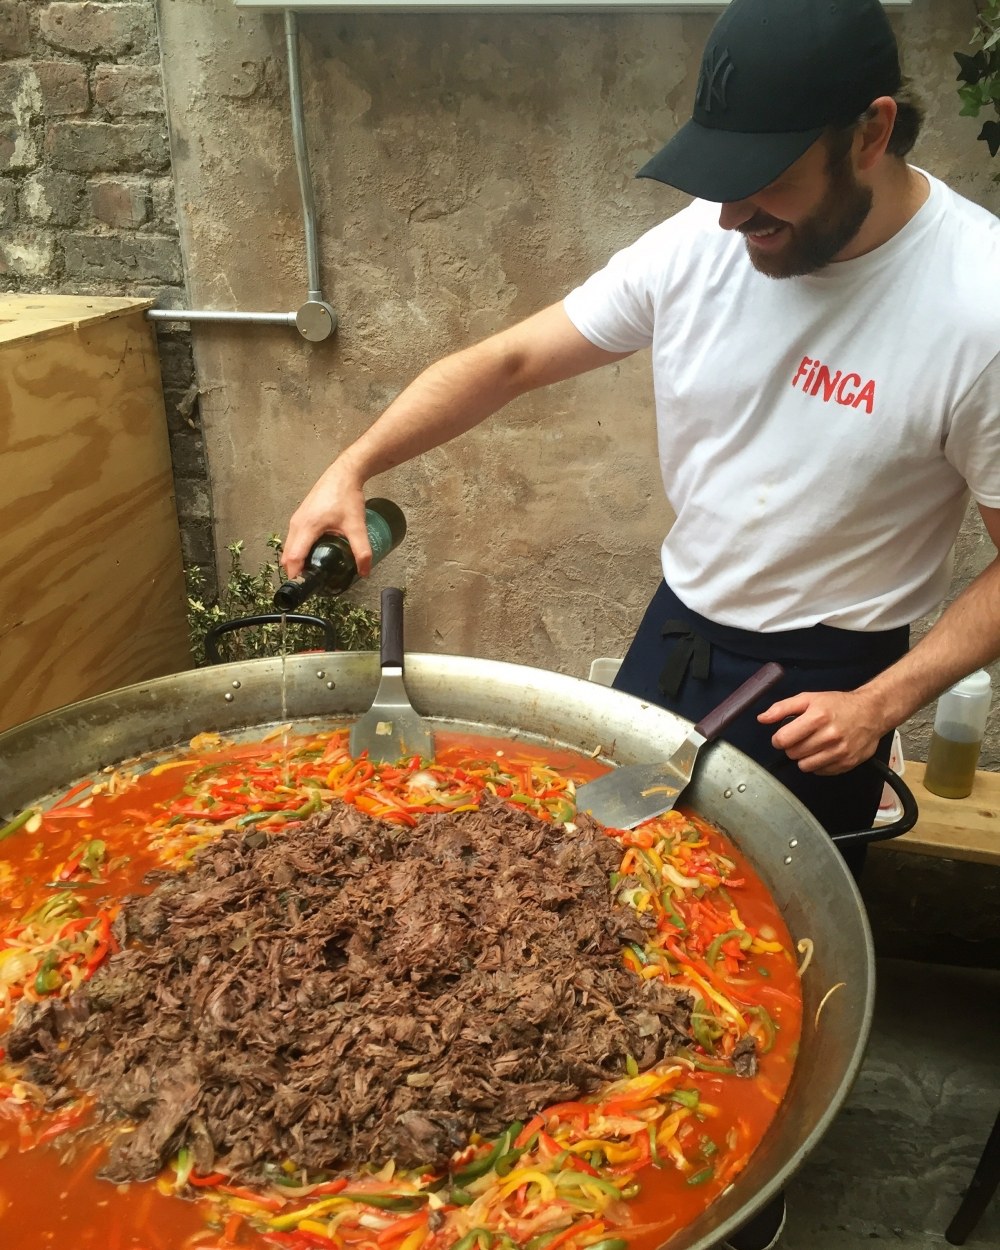 Constellations And Finca Will Be Working Closely Throughout The Summer To Stage Food Events